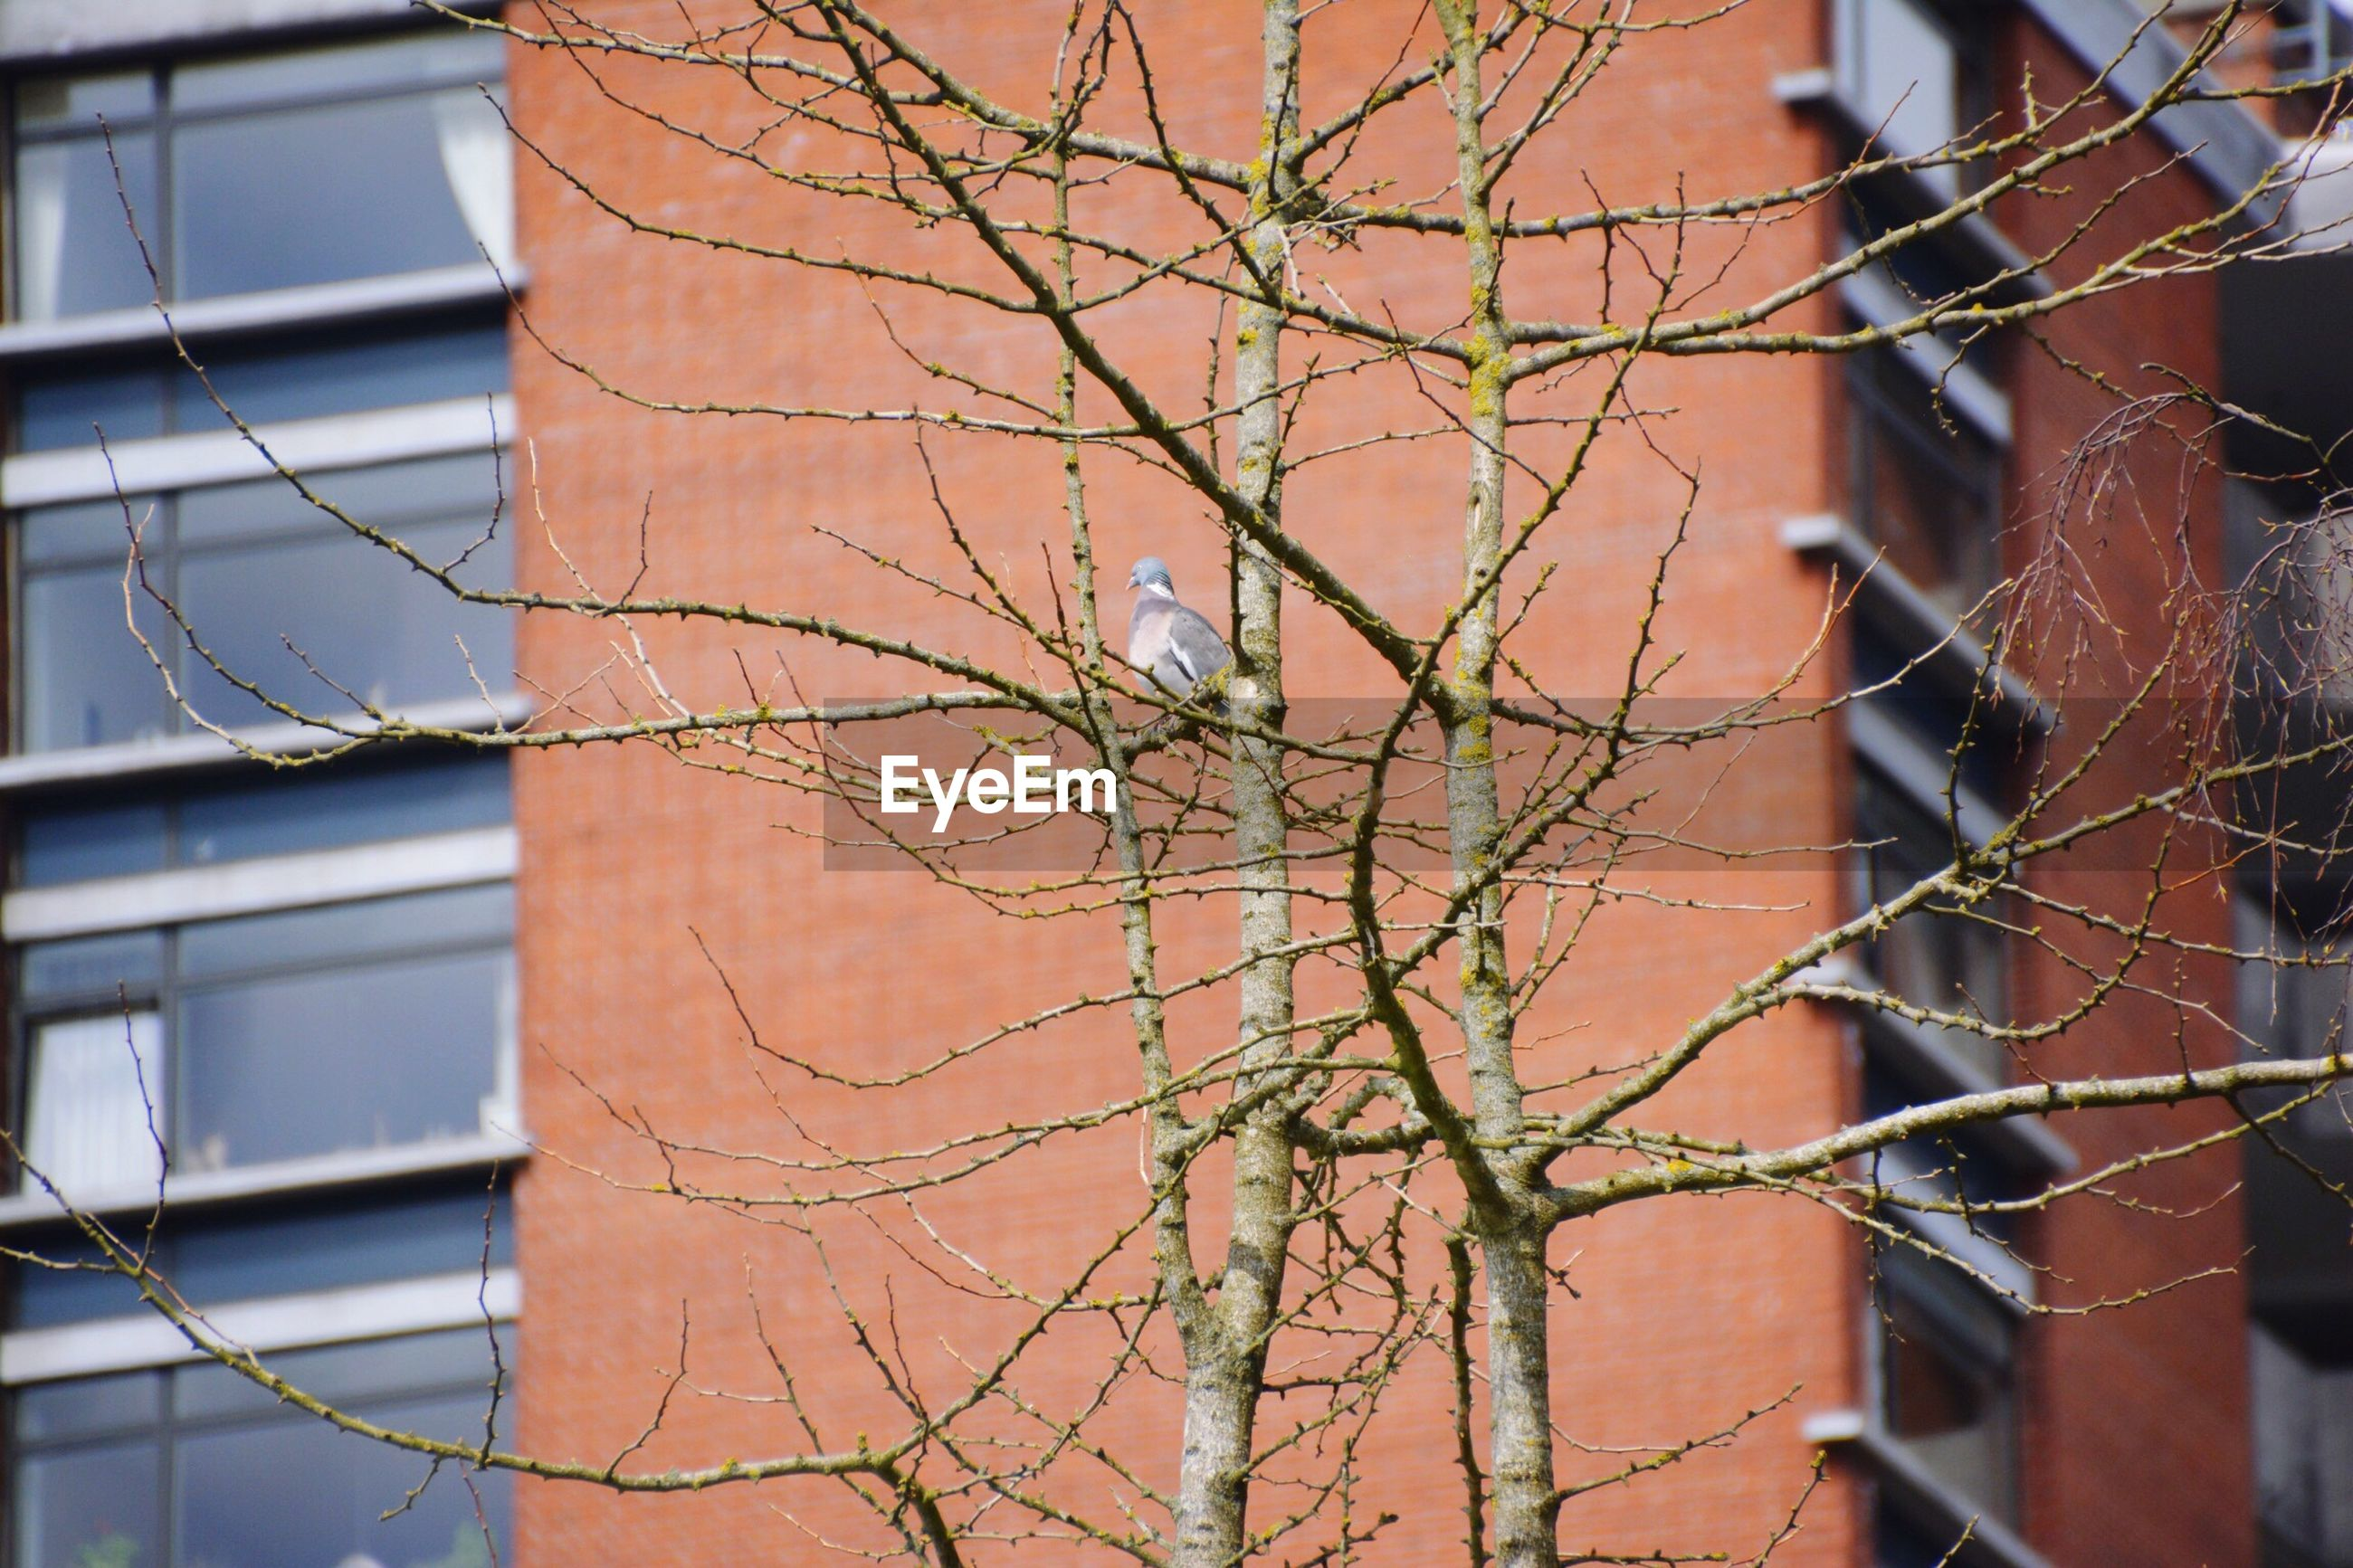 building exterior, built structure, architecture, no people, day, tree, outdoors, branch, sky, bare tree, close-up, beauty in nature, nature